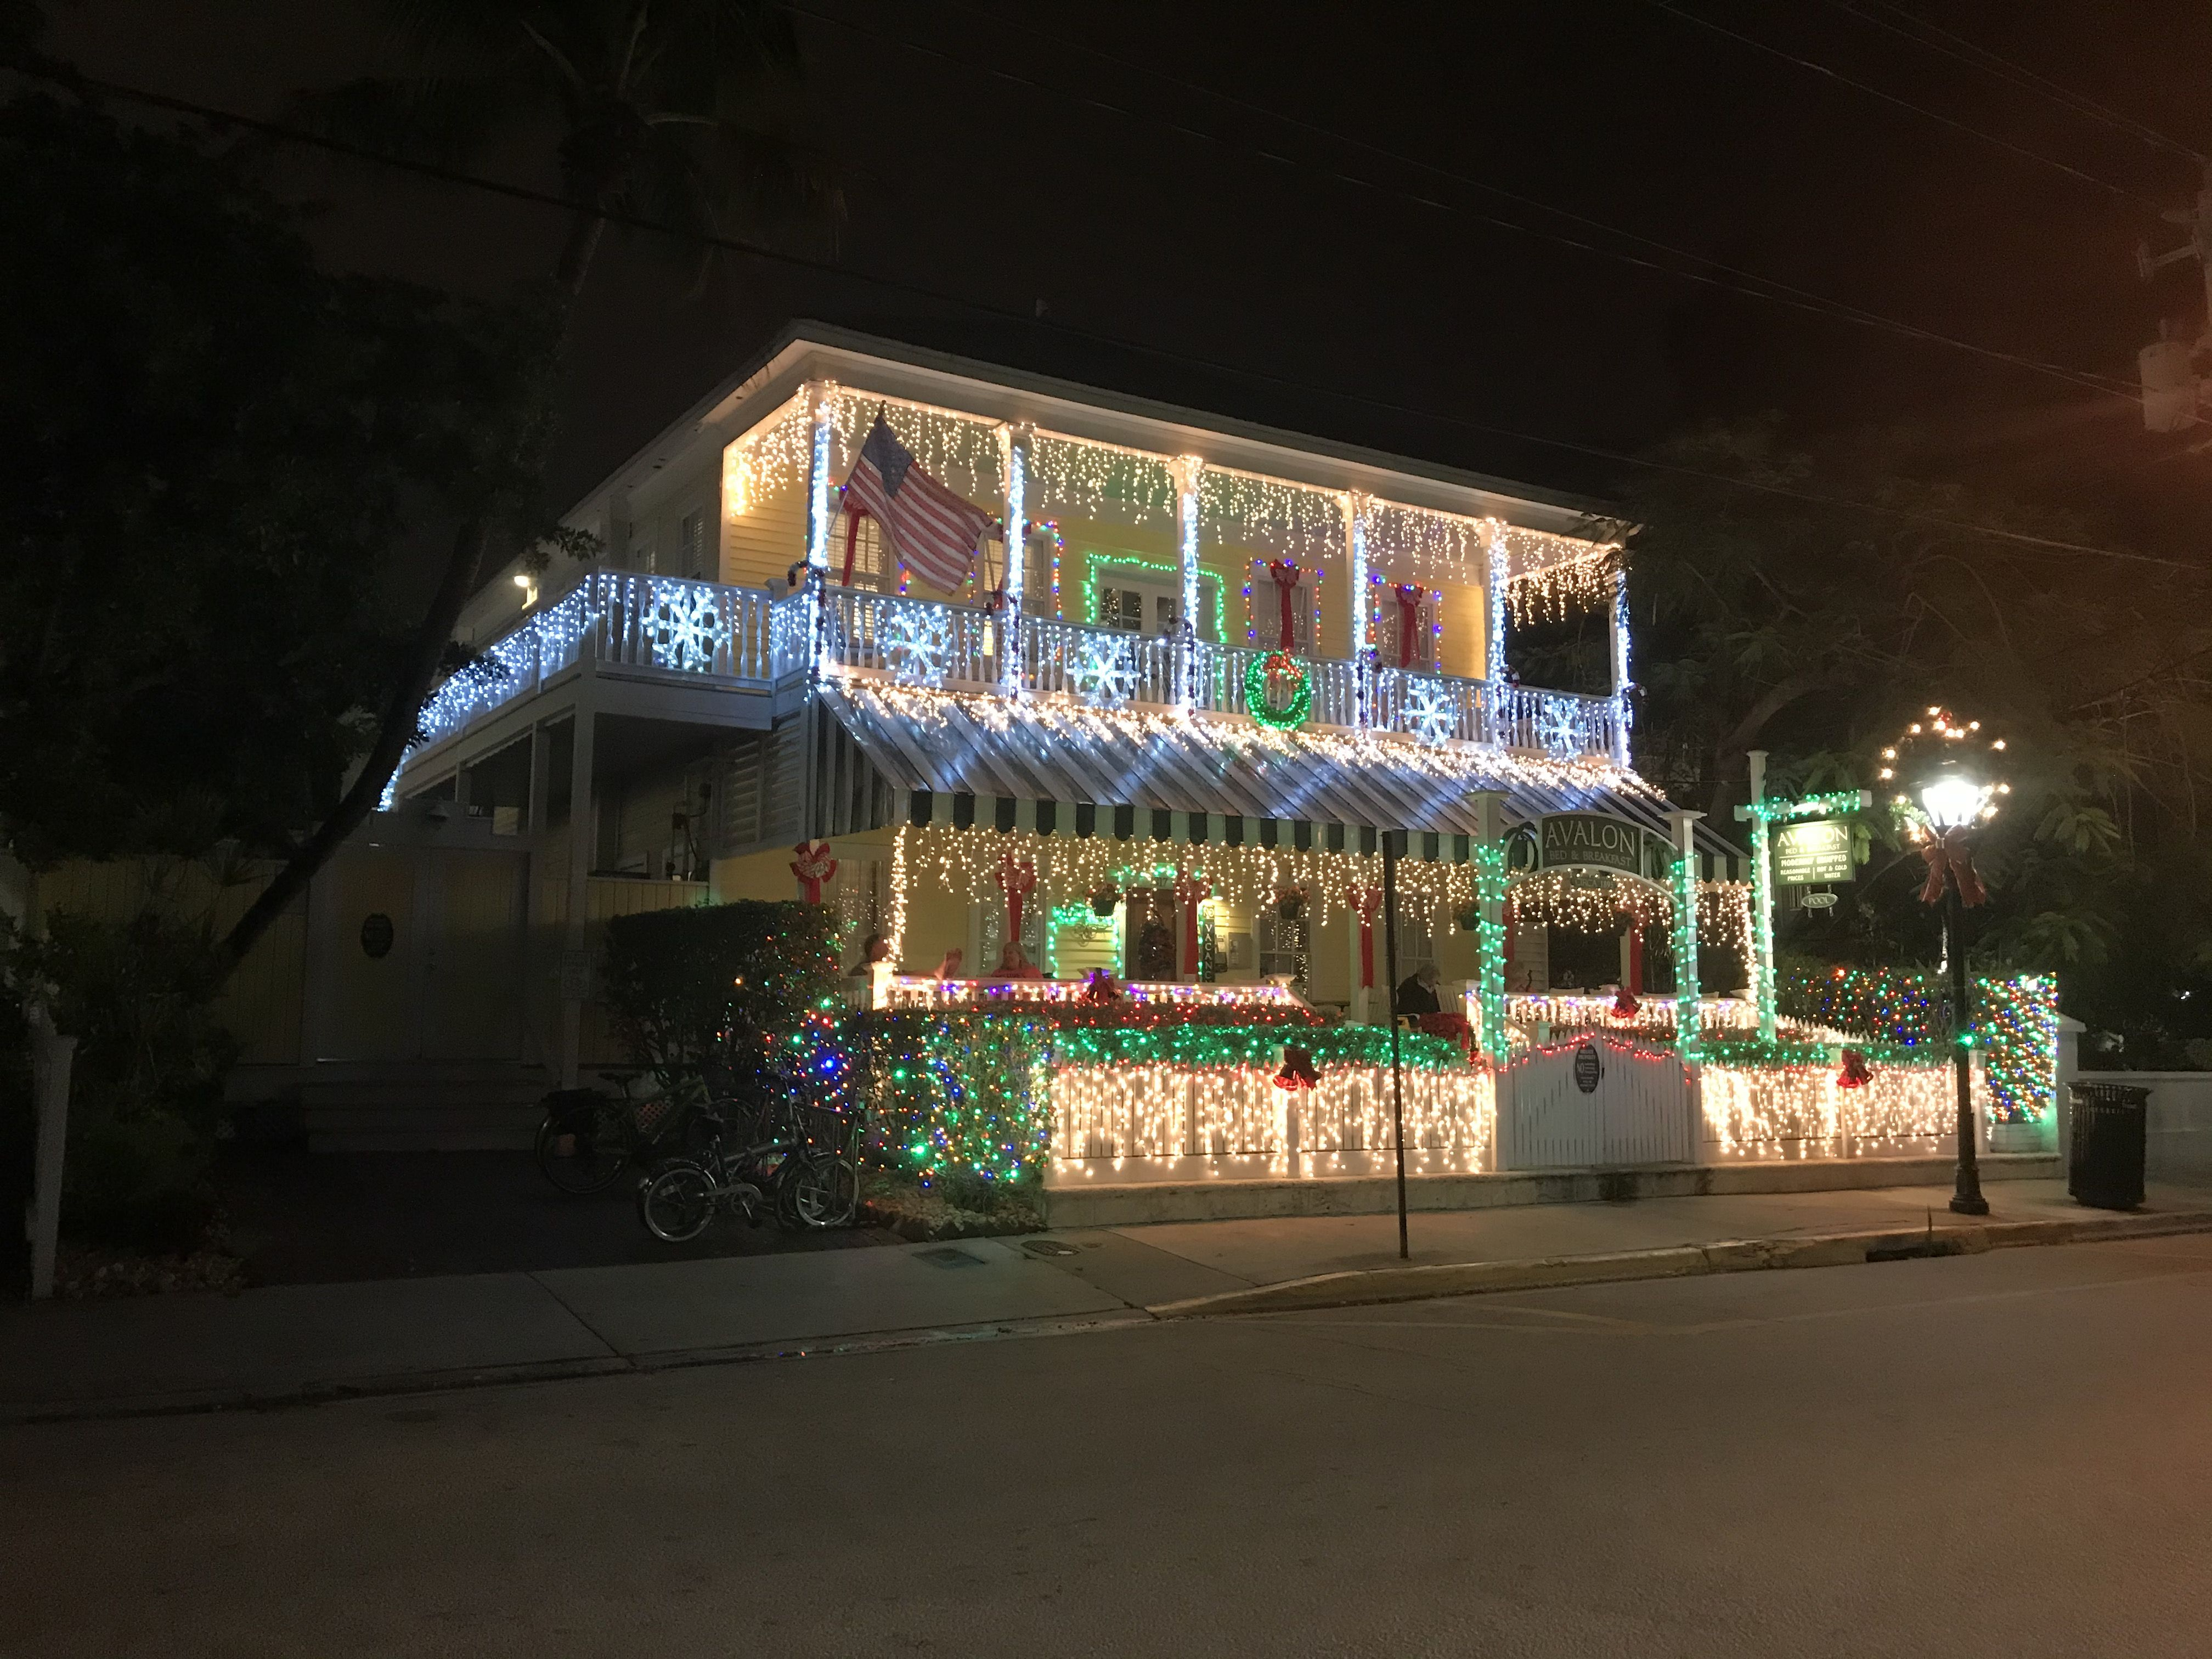 Pin by Robert Reuter on Keywest 2019 in 2020 | Key west, Grounds, Fair  grounds